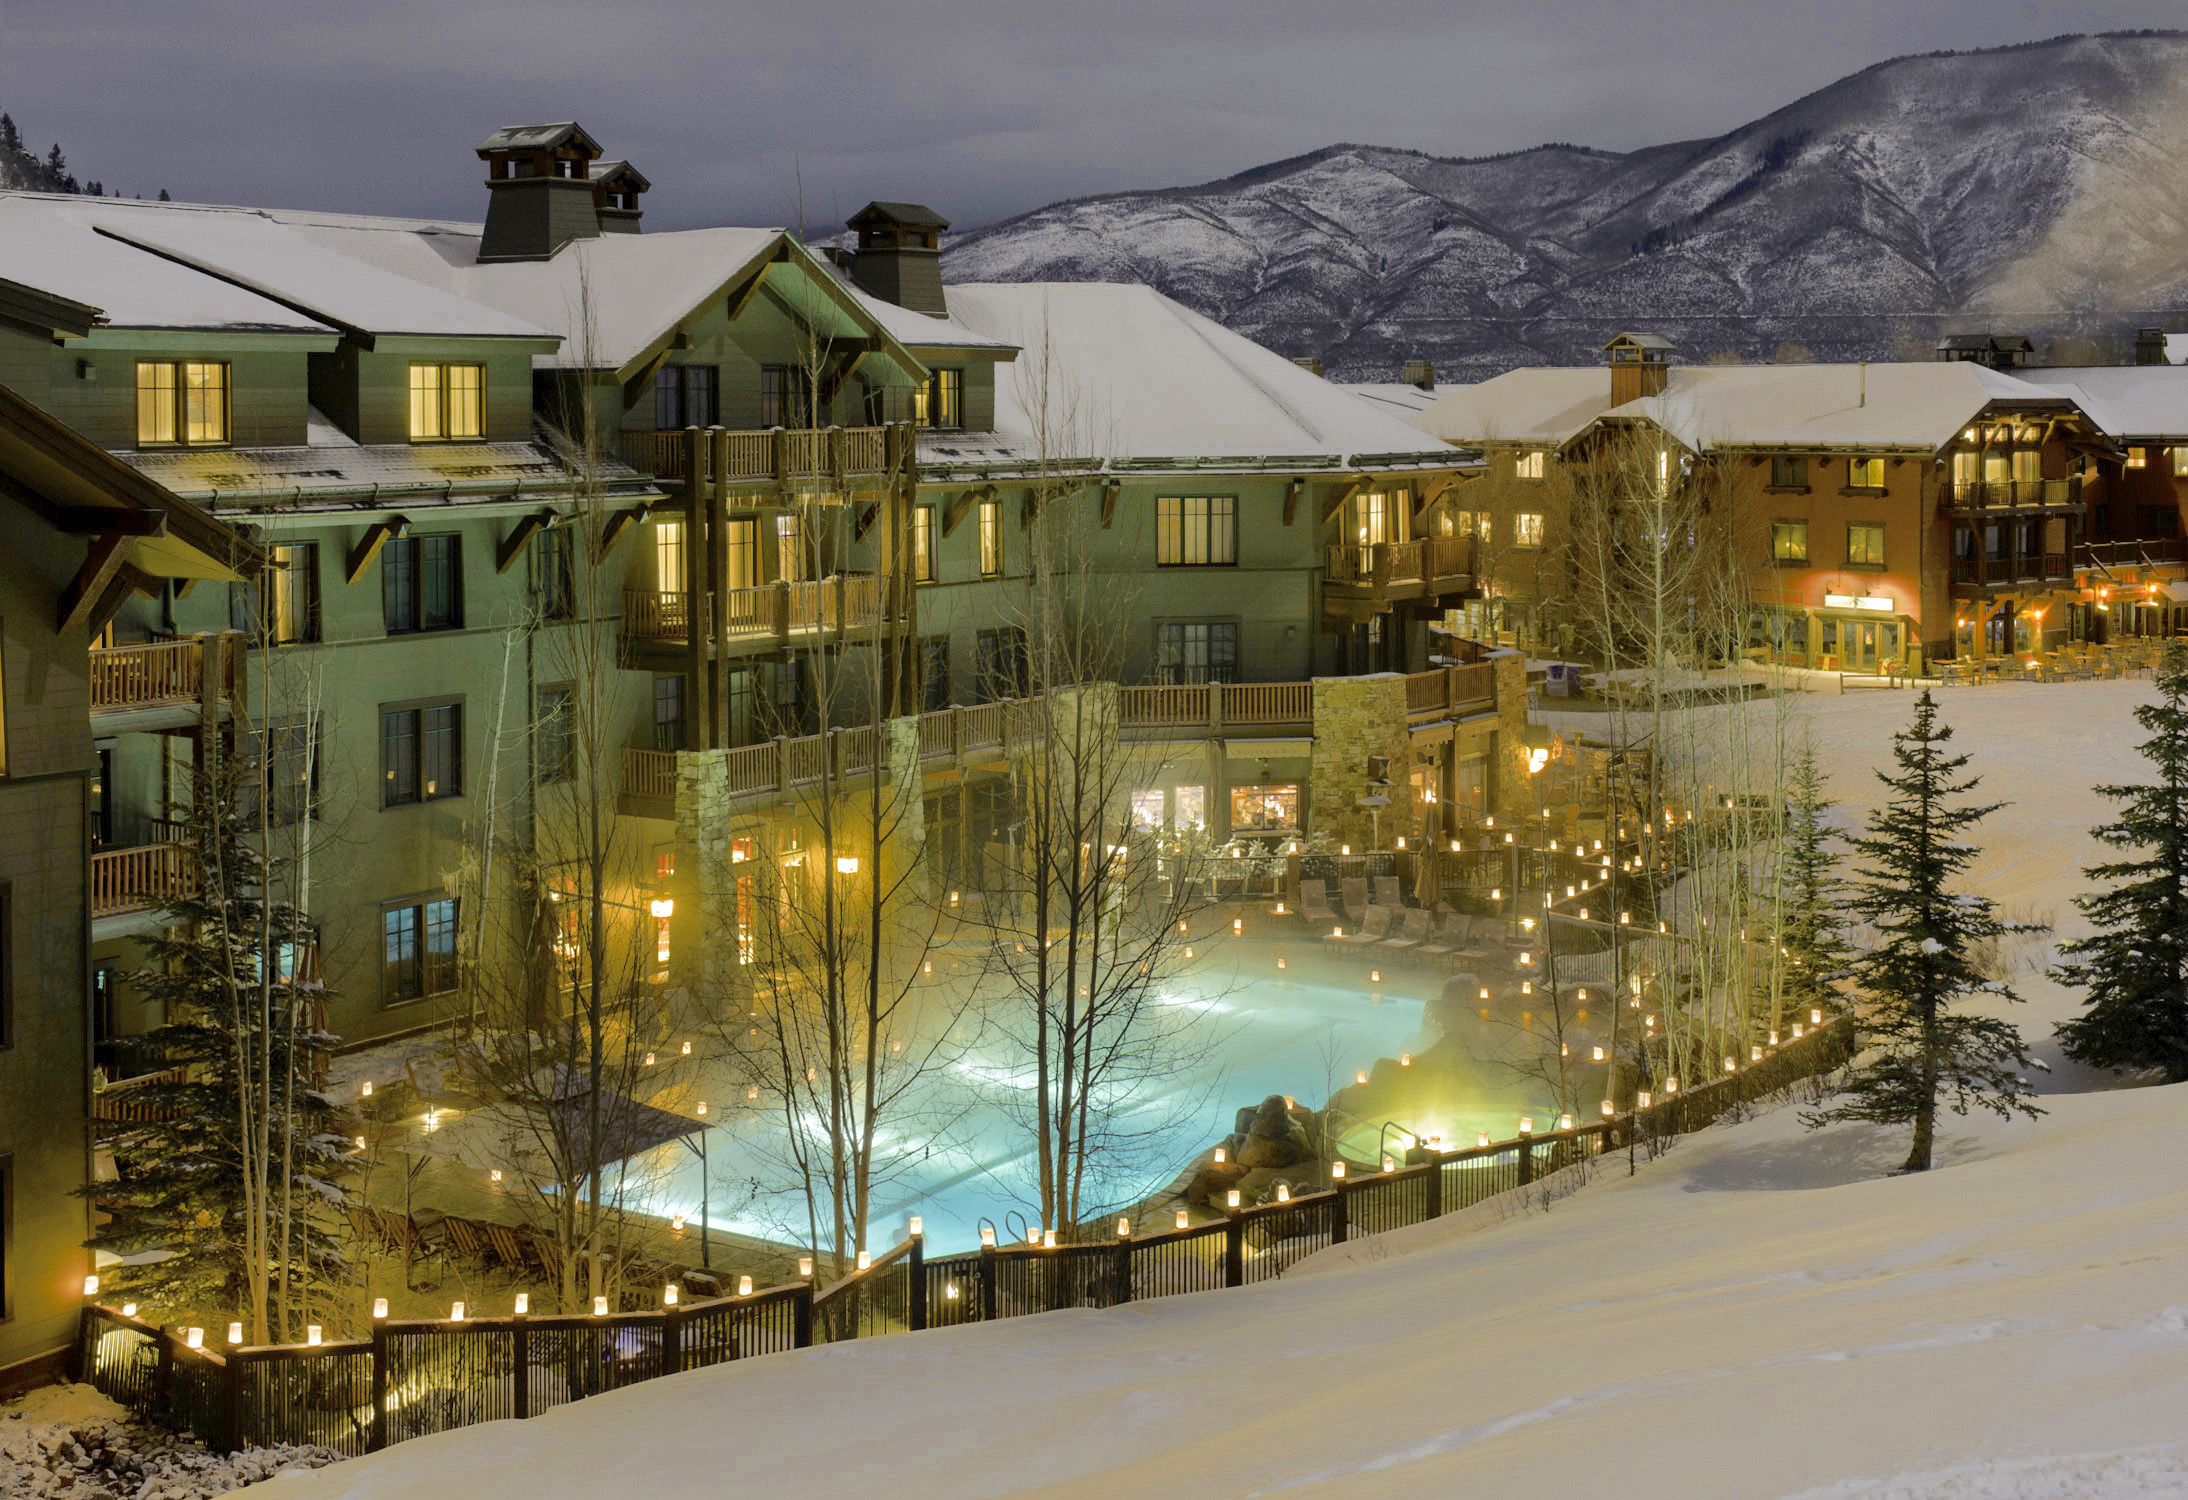 Fractional Ownership for Sale at Ritz-Carlton Club Fractional Condo Interest 0075 Prospector Road, 8404, Summer Interest 9, Ritz-Carlton Club Fractional Condo Interest Aspen, Colorado, 81611 United States